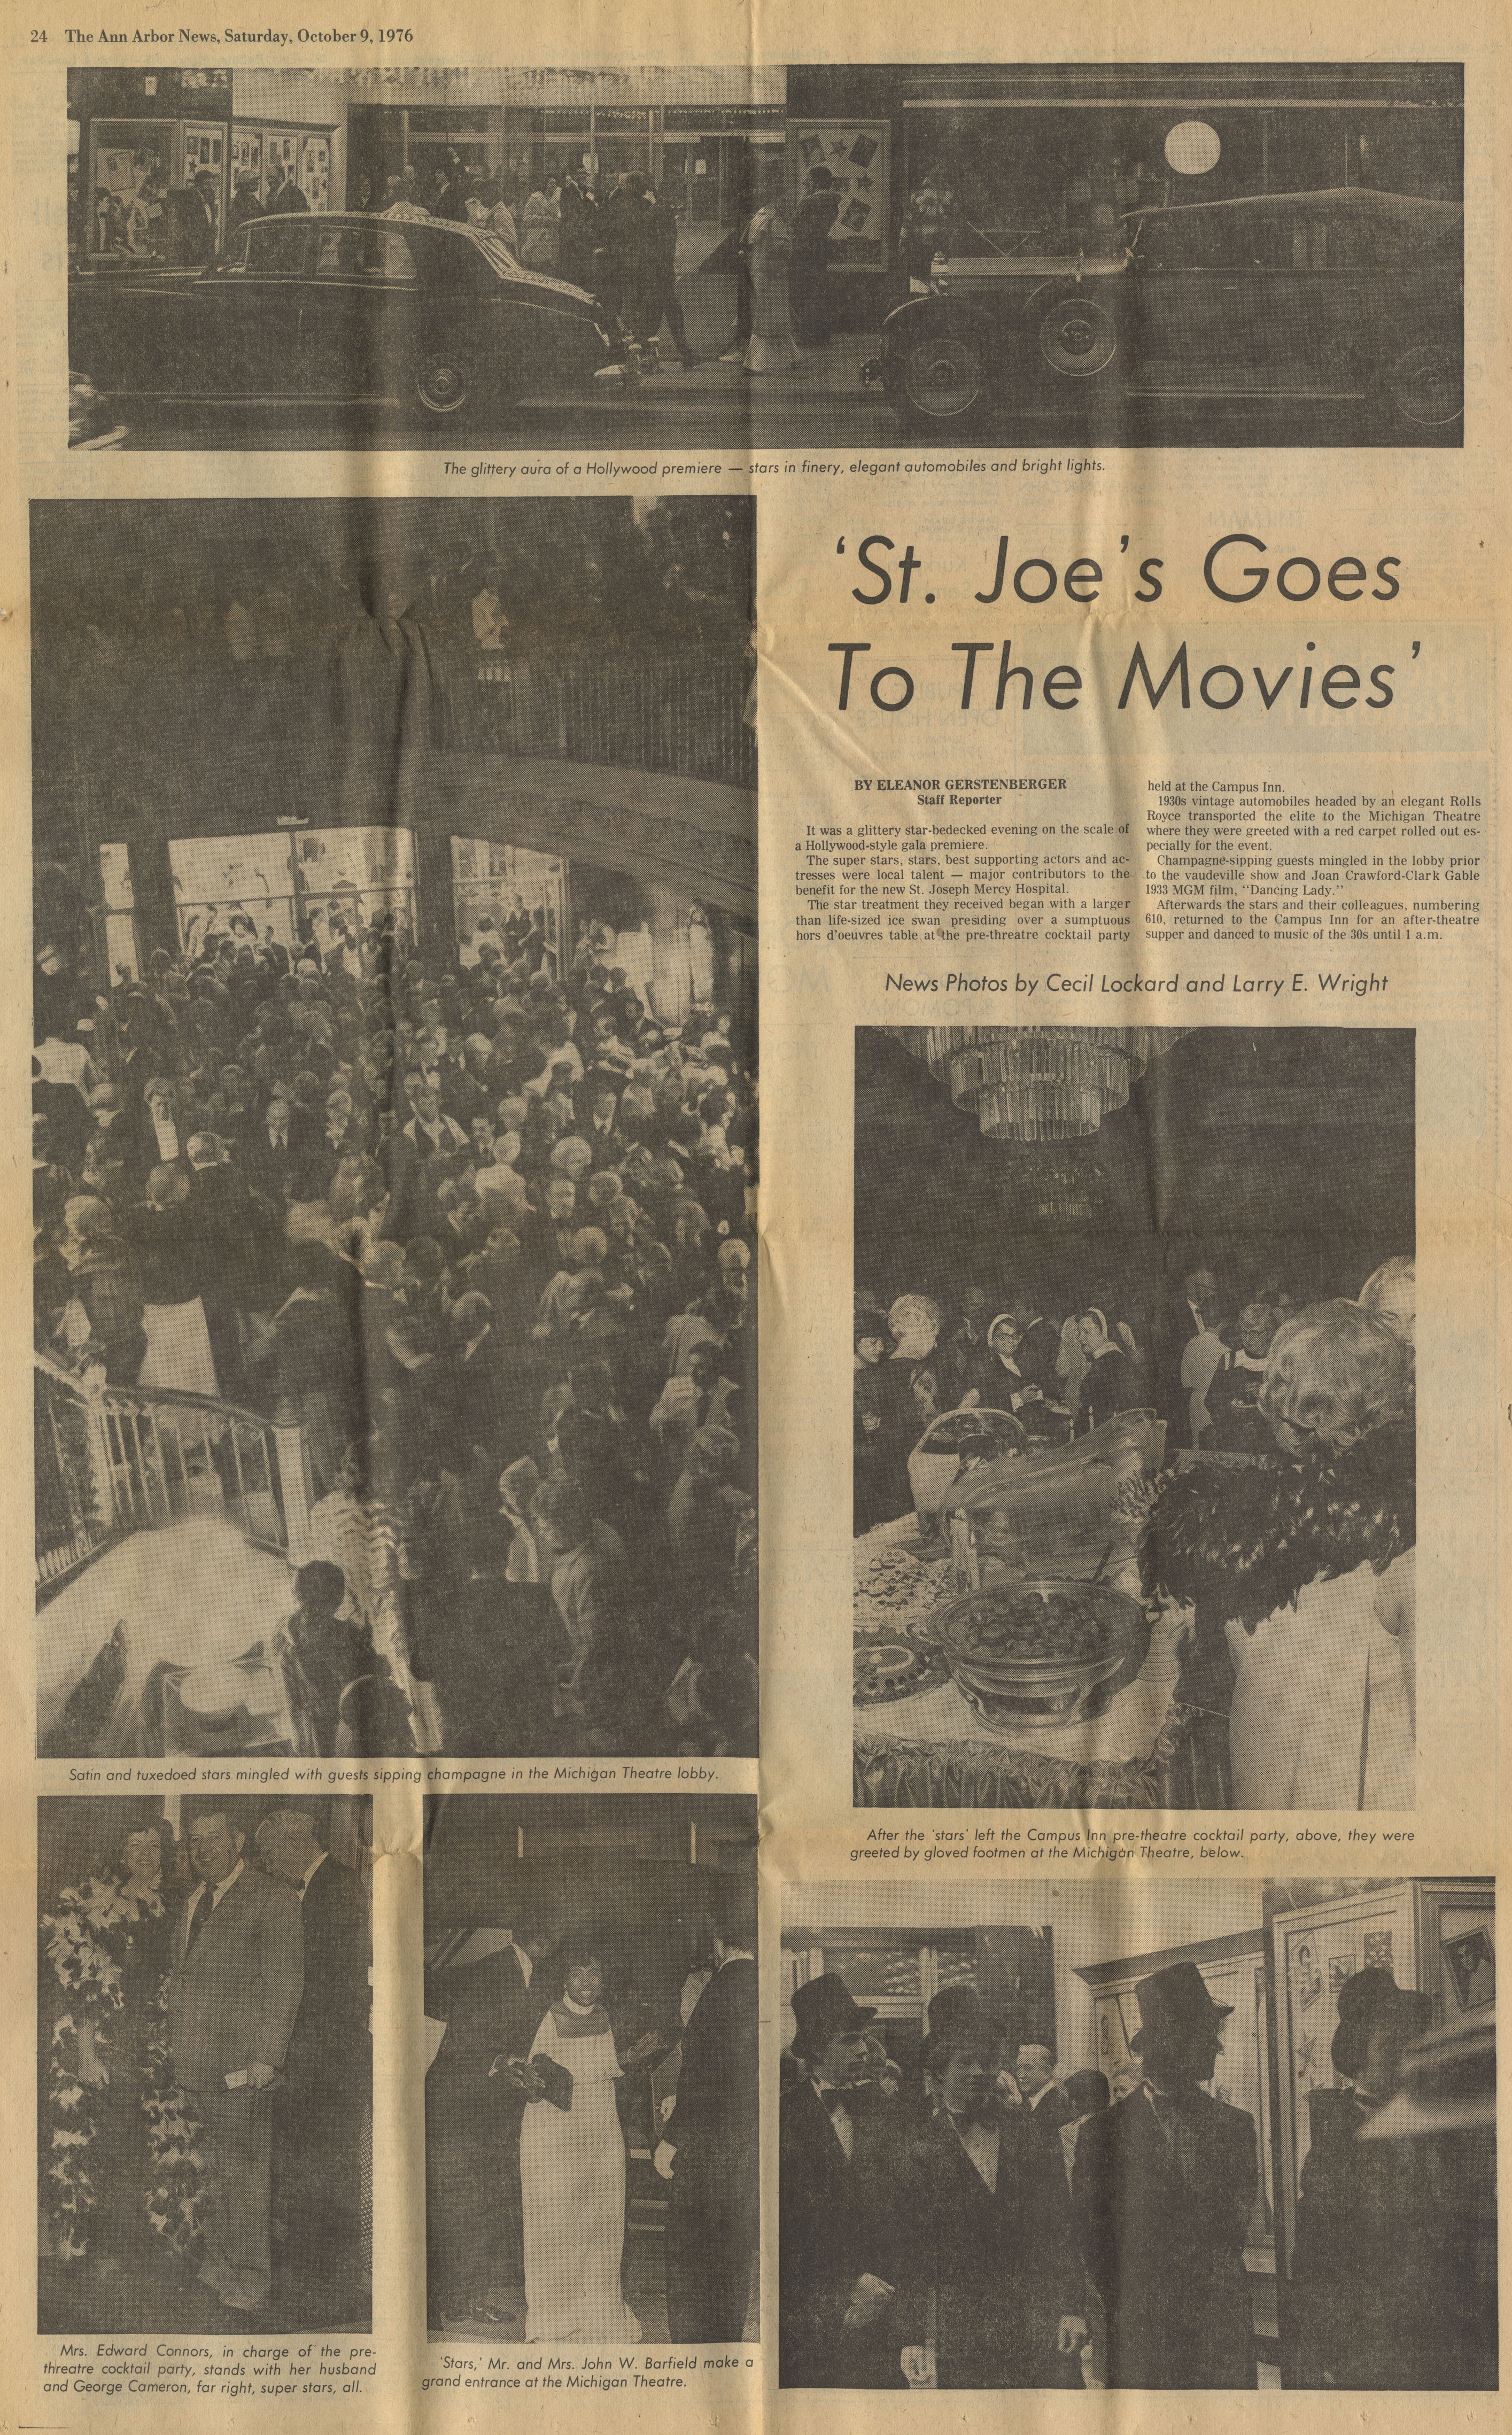 St. Joe's Goes To The Movies image